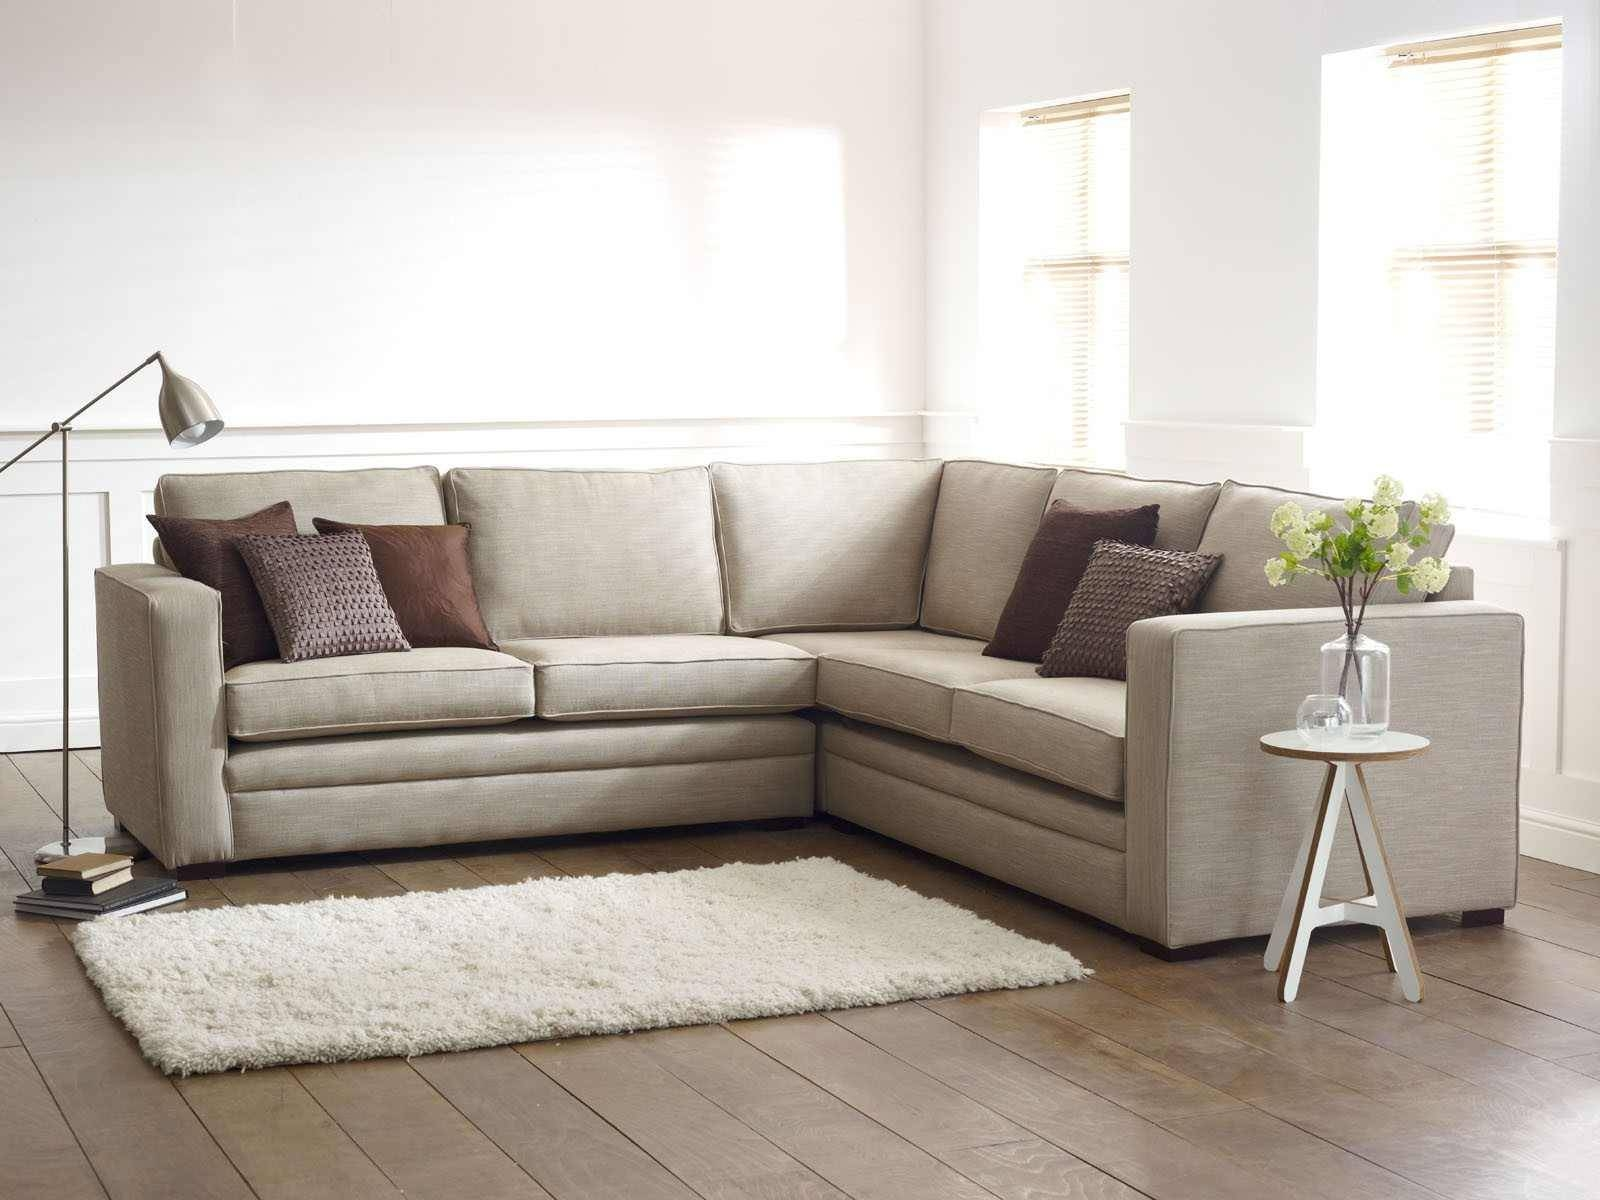 15 Lovely Small Modern Sectional Sofa L Shaped 17 Best Ideas About with Small L-Shaped Sectional Sofas (Image 1 of 15)